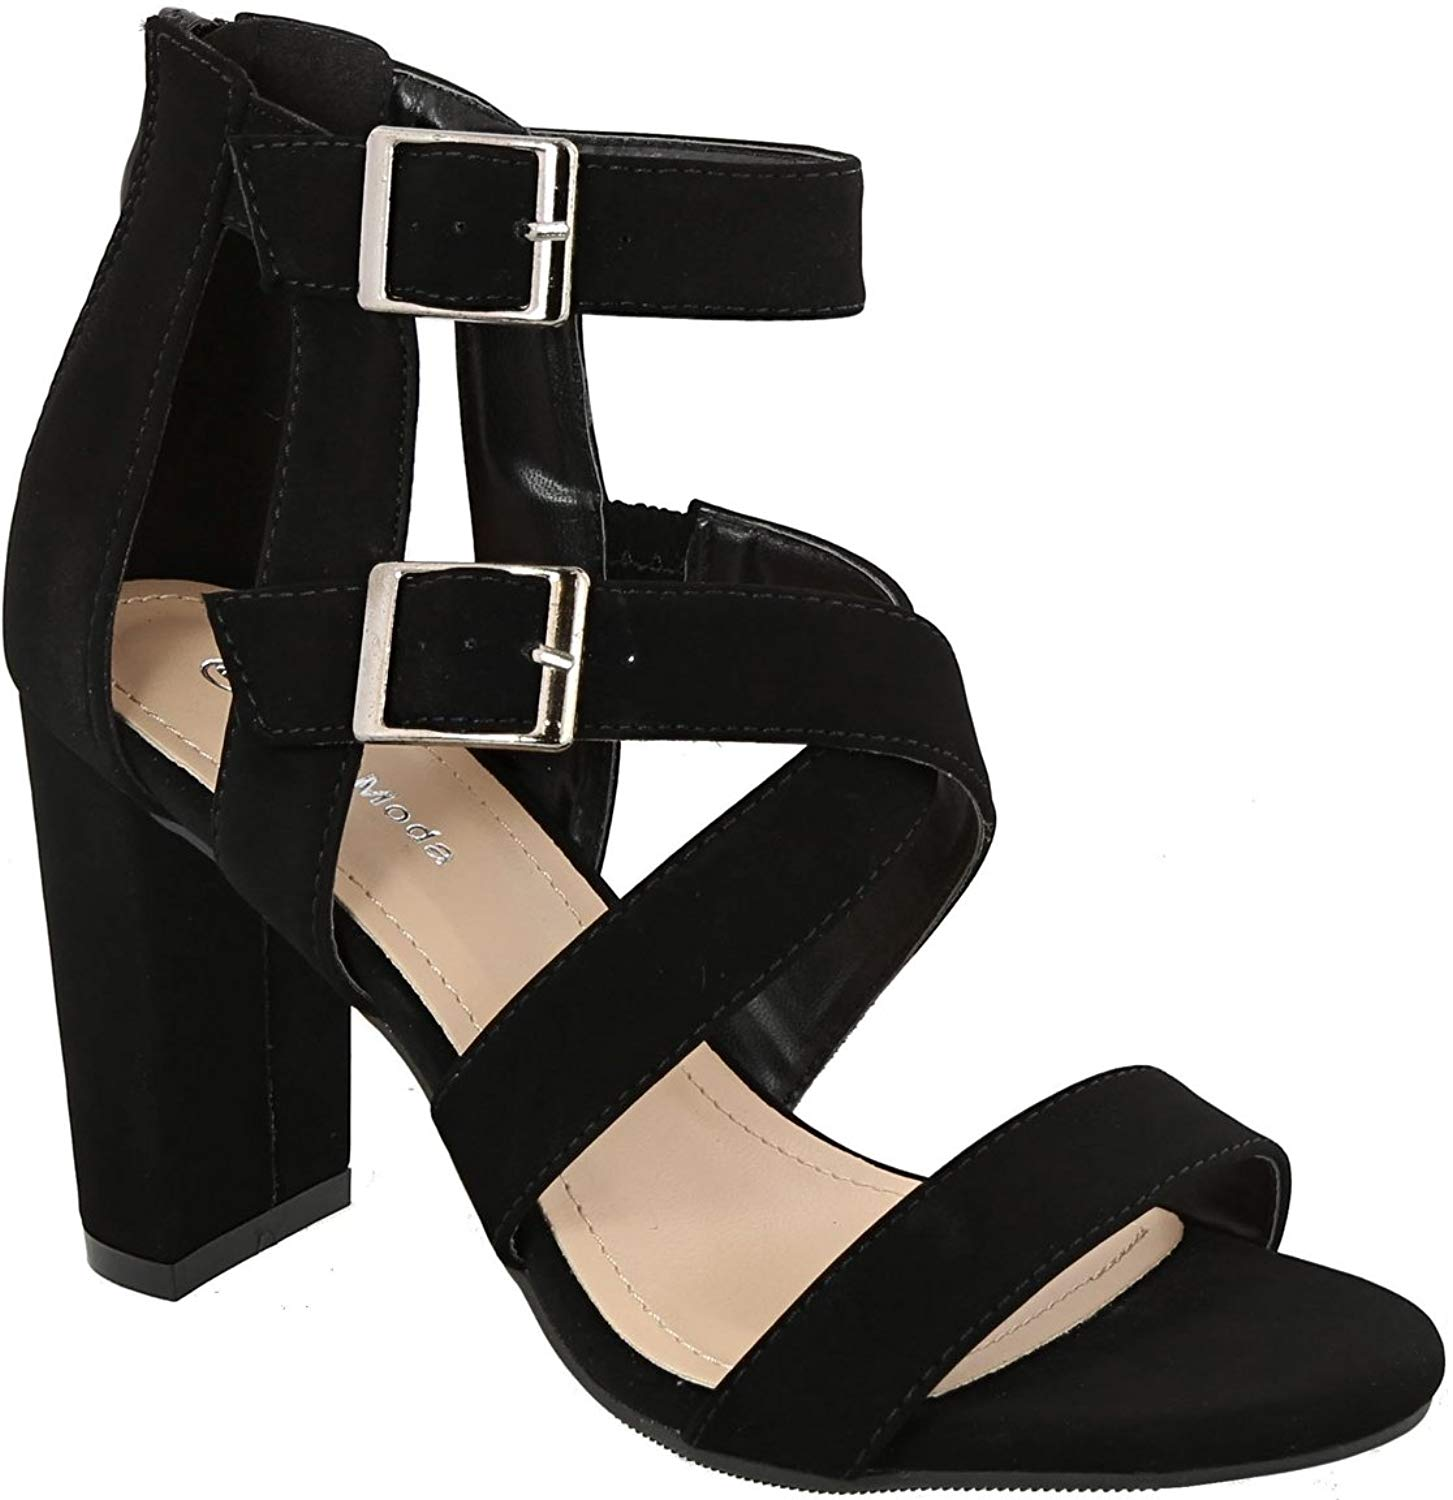 ca6a134344c Get Quotations · Top Moda Konner-98 Women s Crisscross Straps Chunky Open  Toe Double Ankle Strap Platform Heel